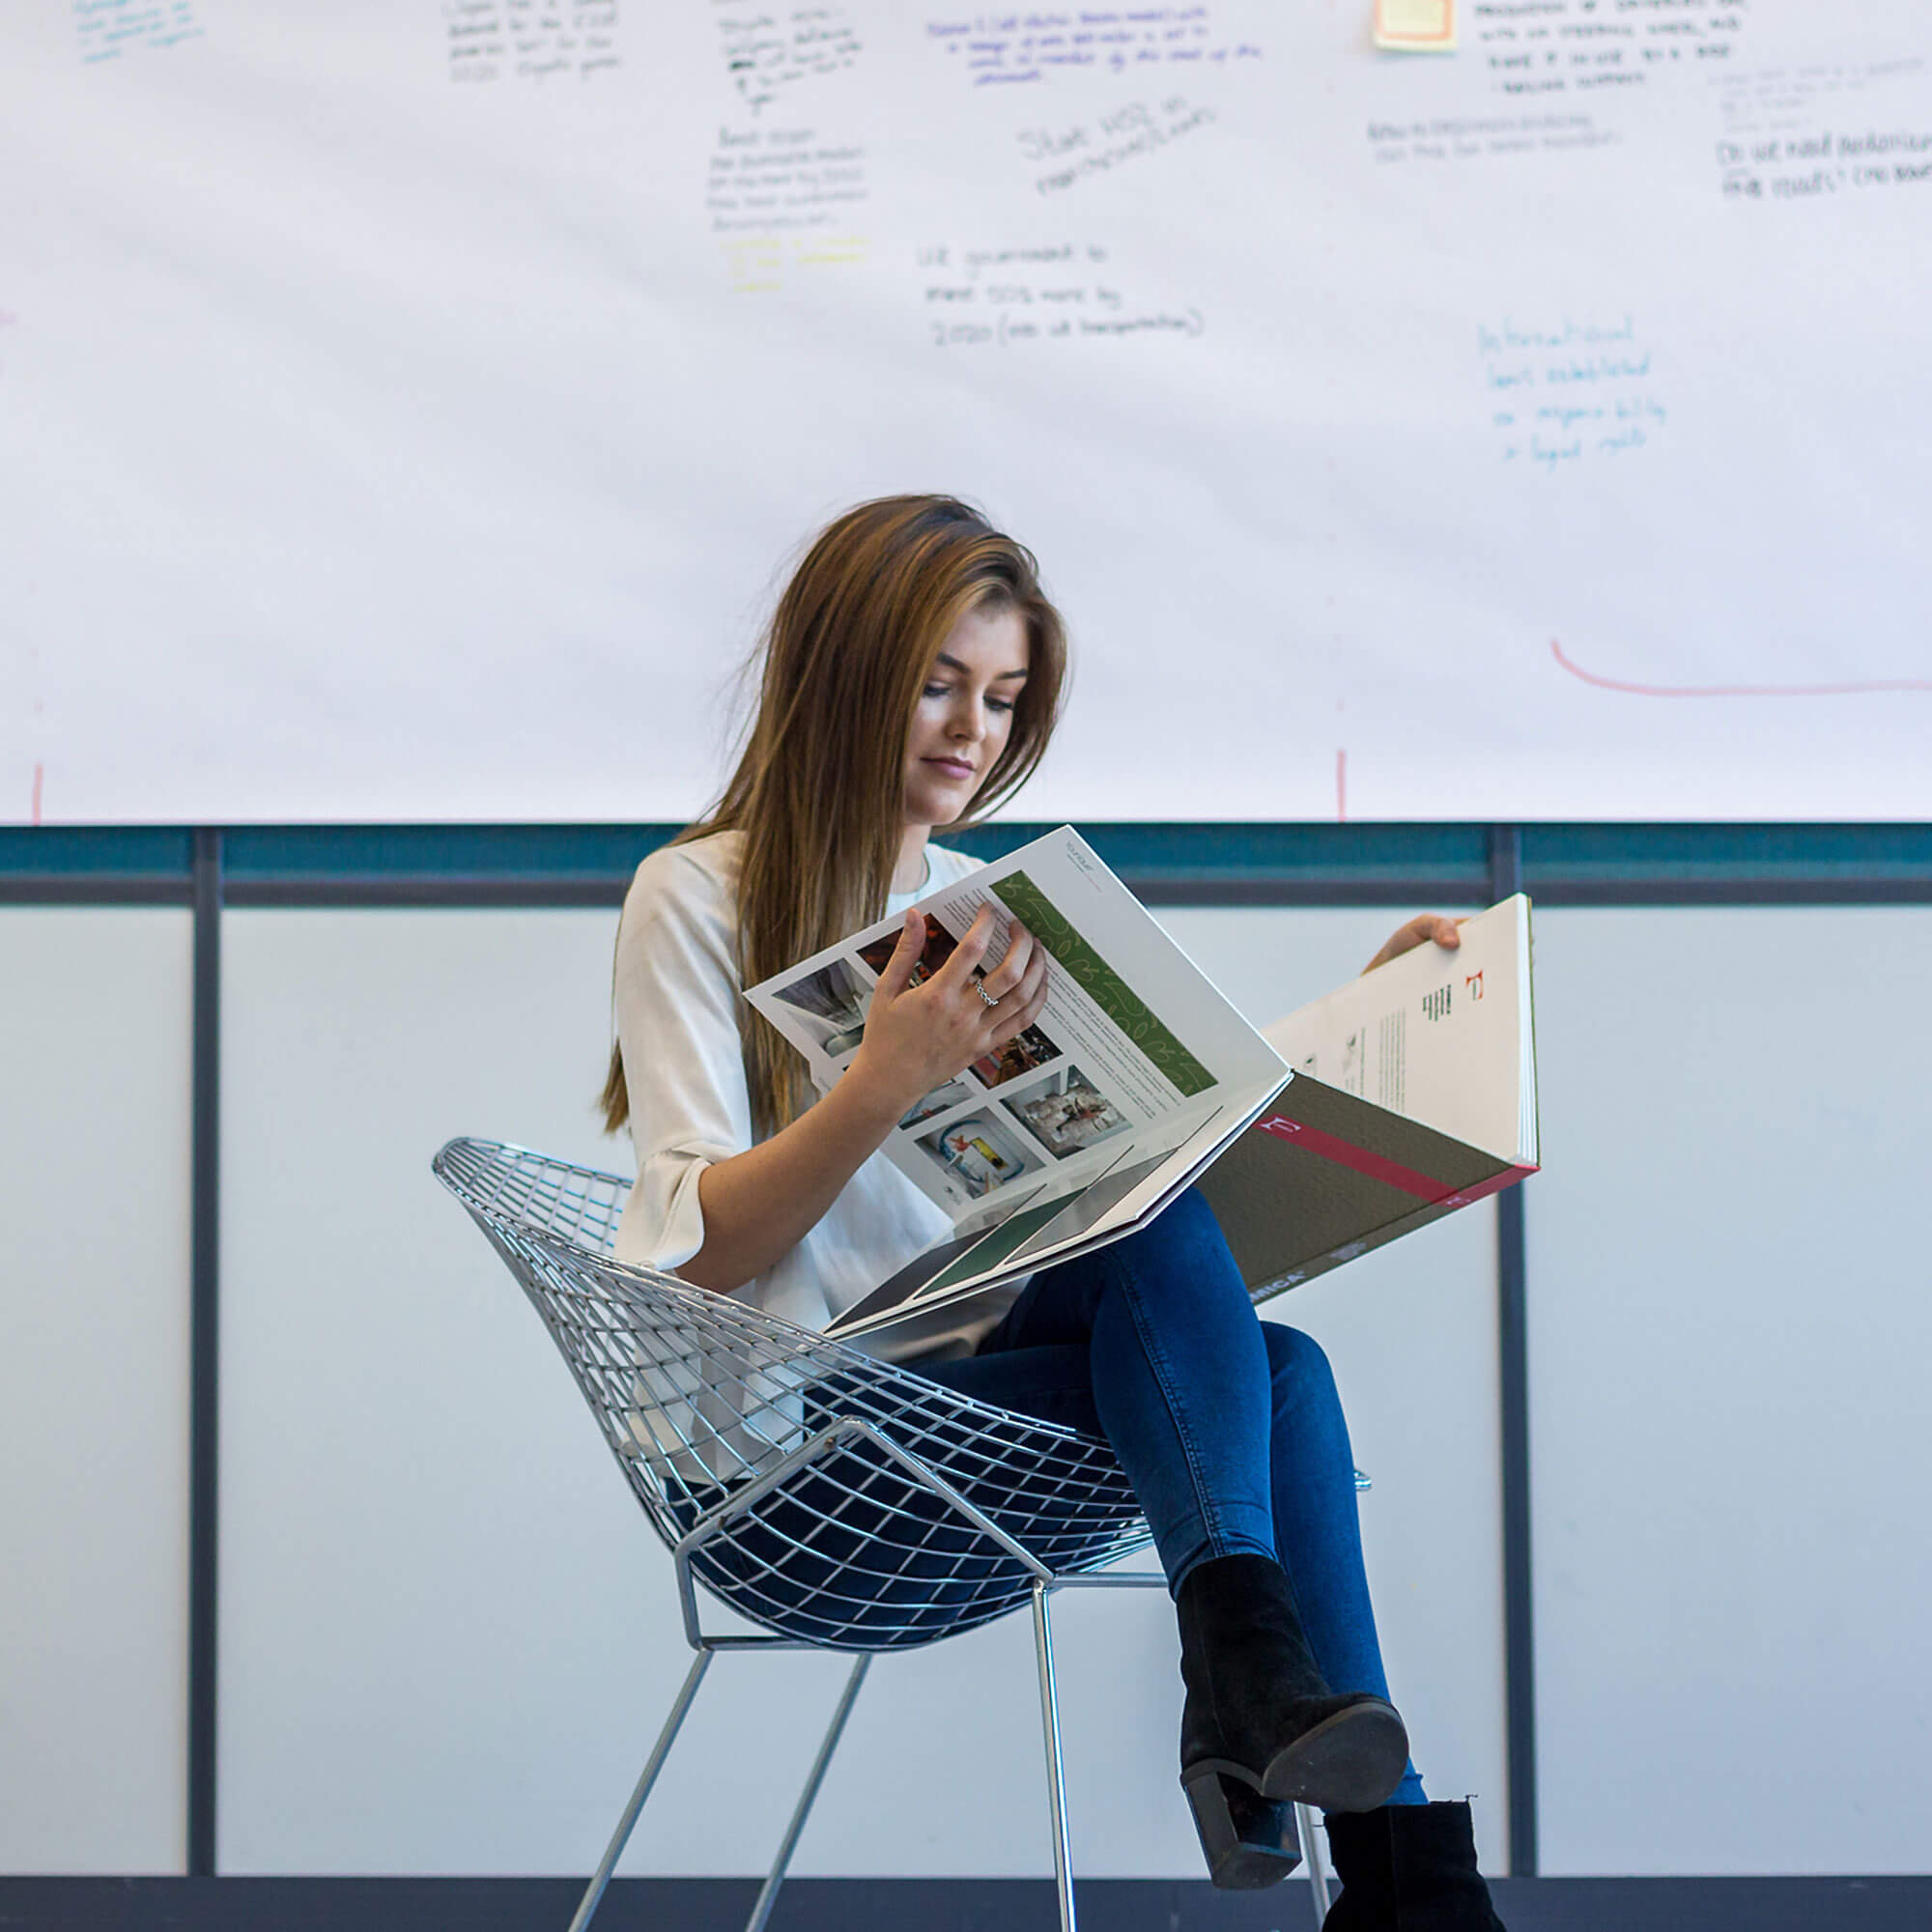 A student sits reading a publication